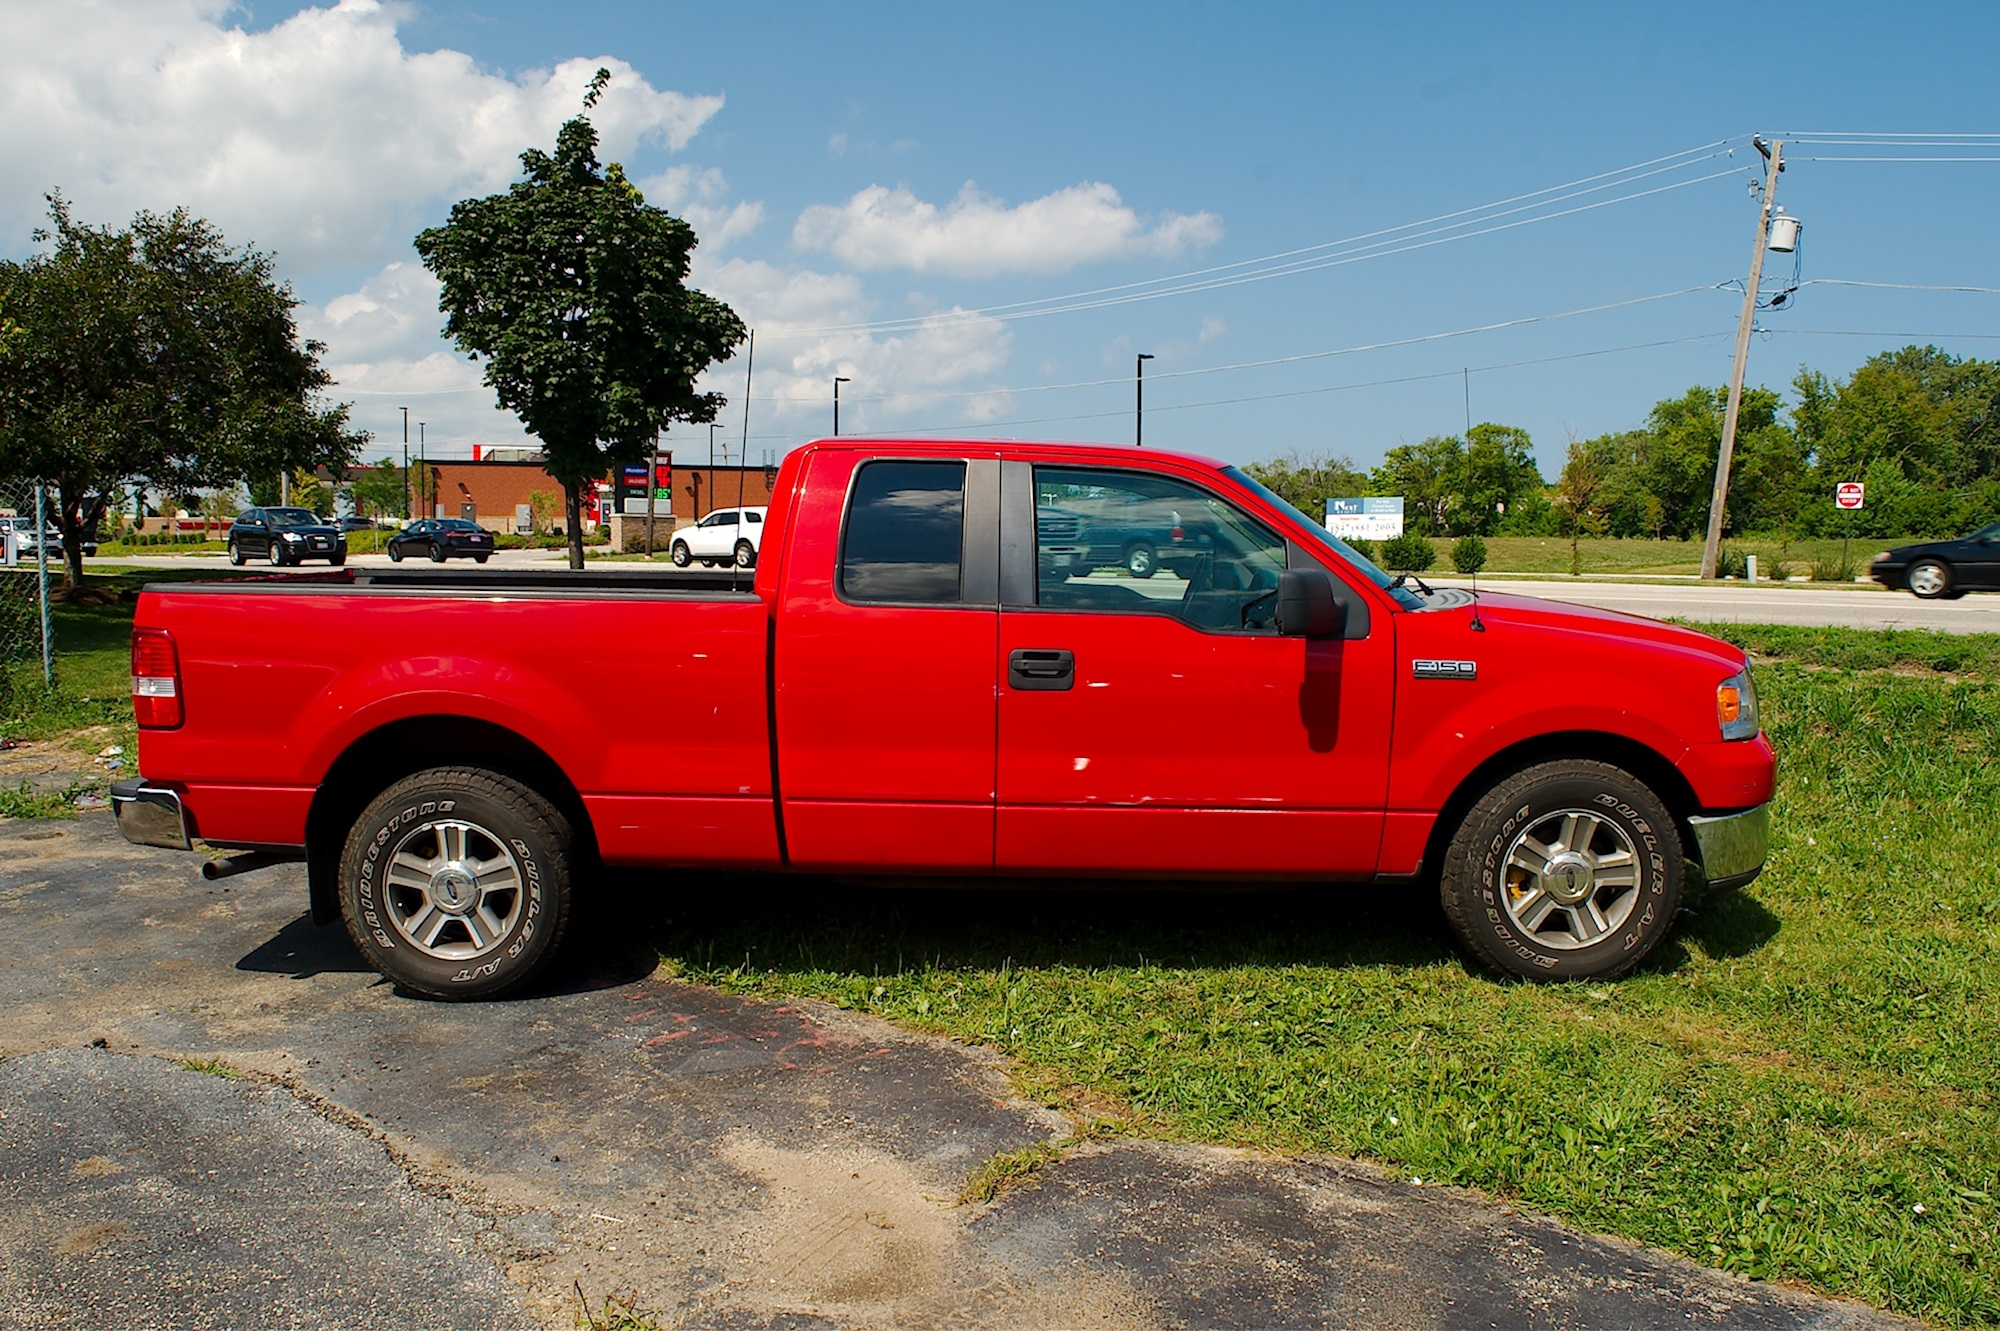 2007 Ford F150 Red 4X2 Used Pickup Truck Sale Antioch Zion Waukegan Lake County Illinois